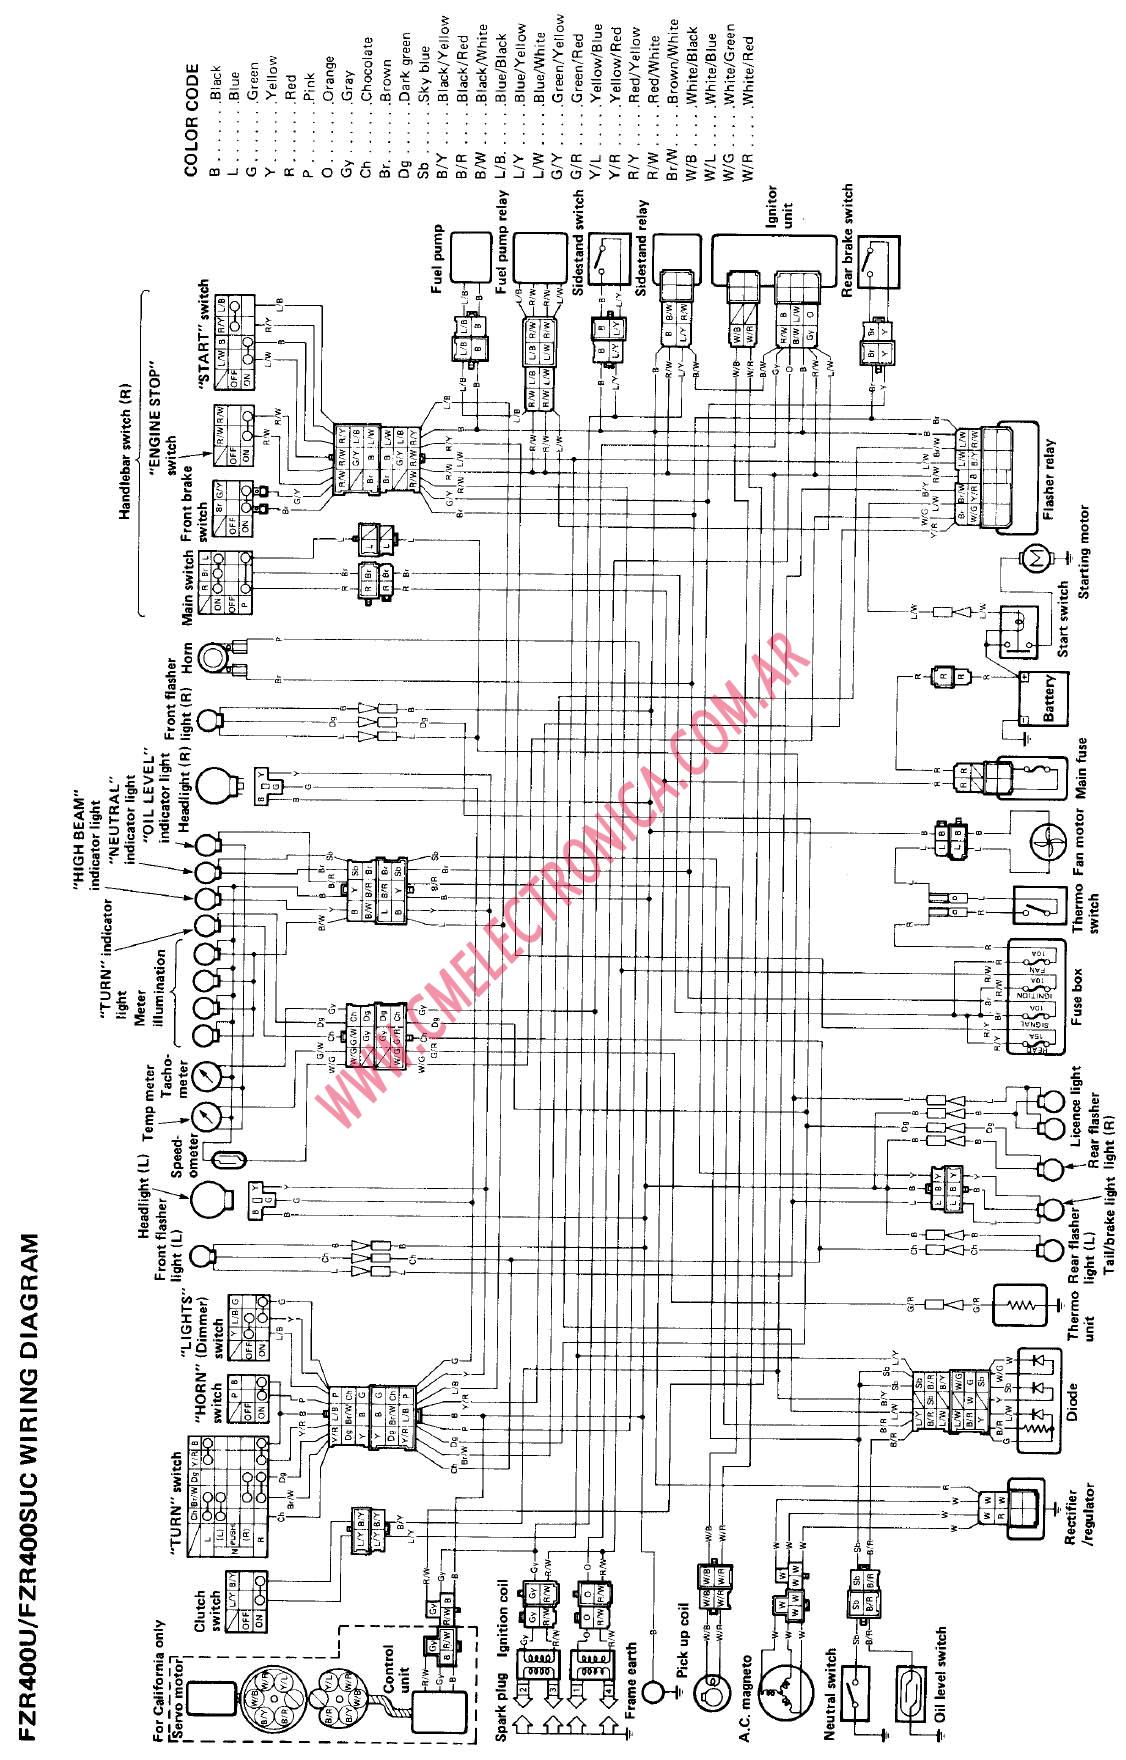 04 gsxr 600 wiring diagram double door refrigerator 92 750 get free image about